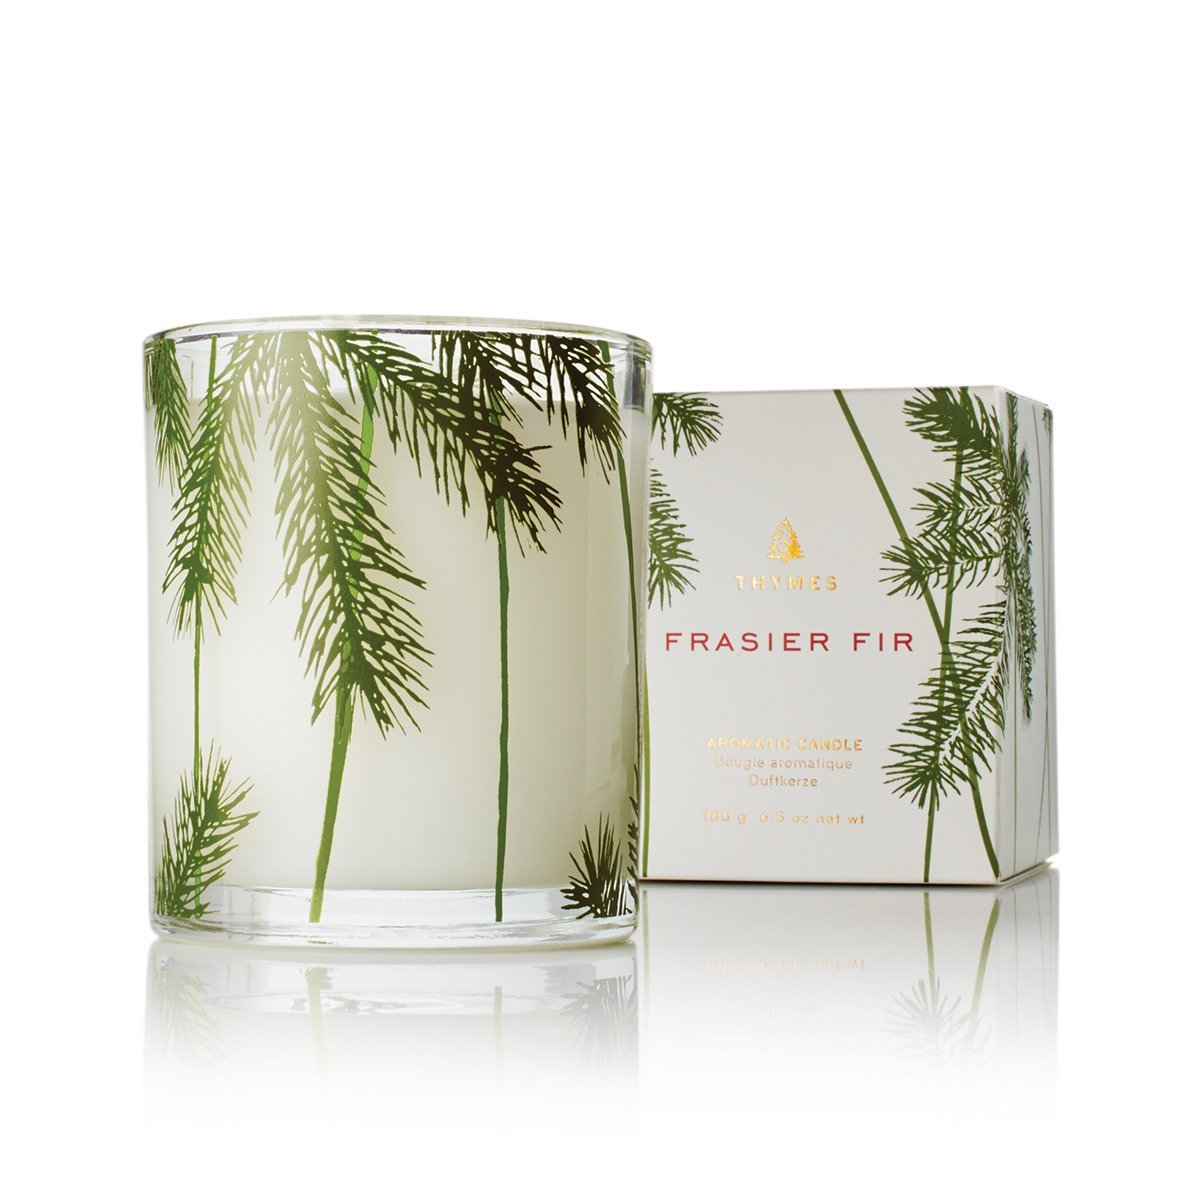 Thymes Frasier Fir Poured Candle with Decorative Glass Jar - 6.5oz 0521533000